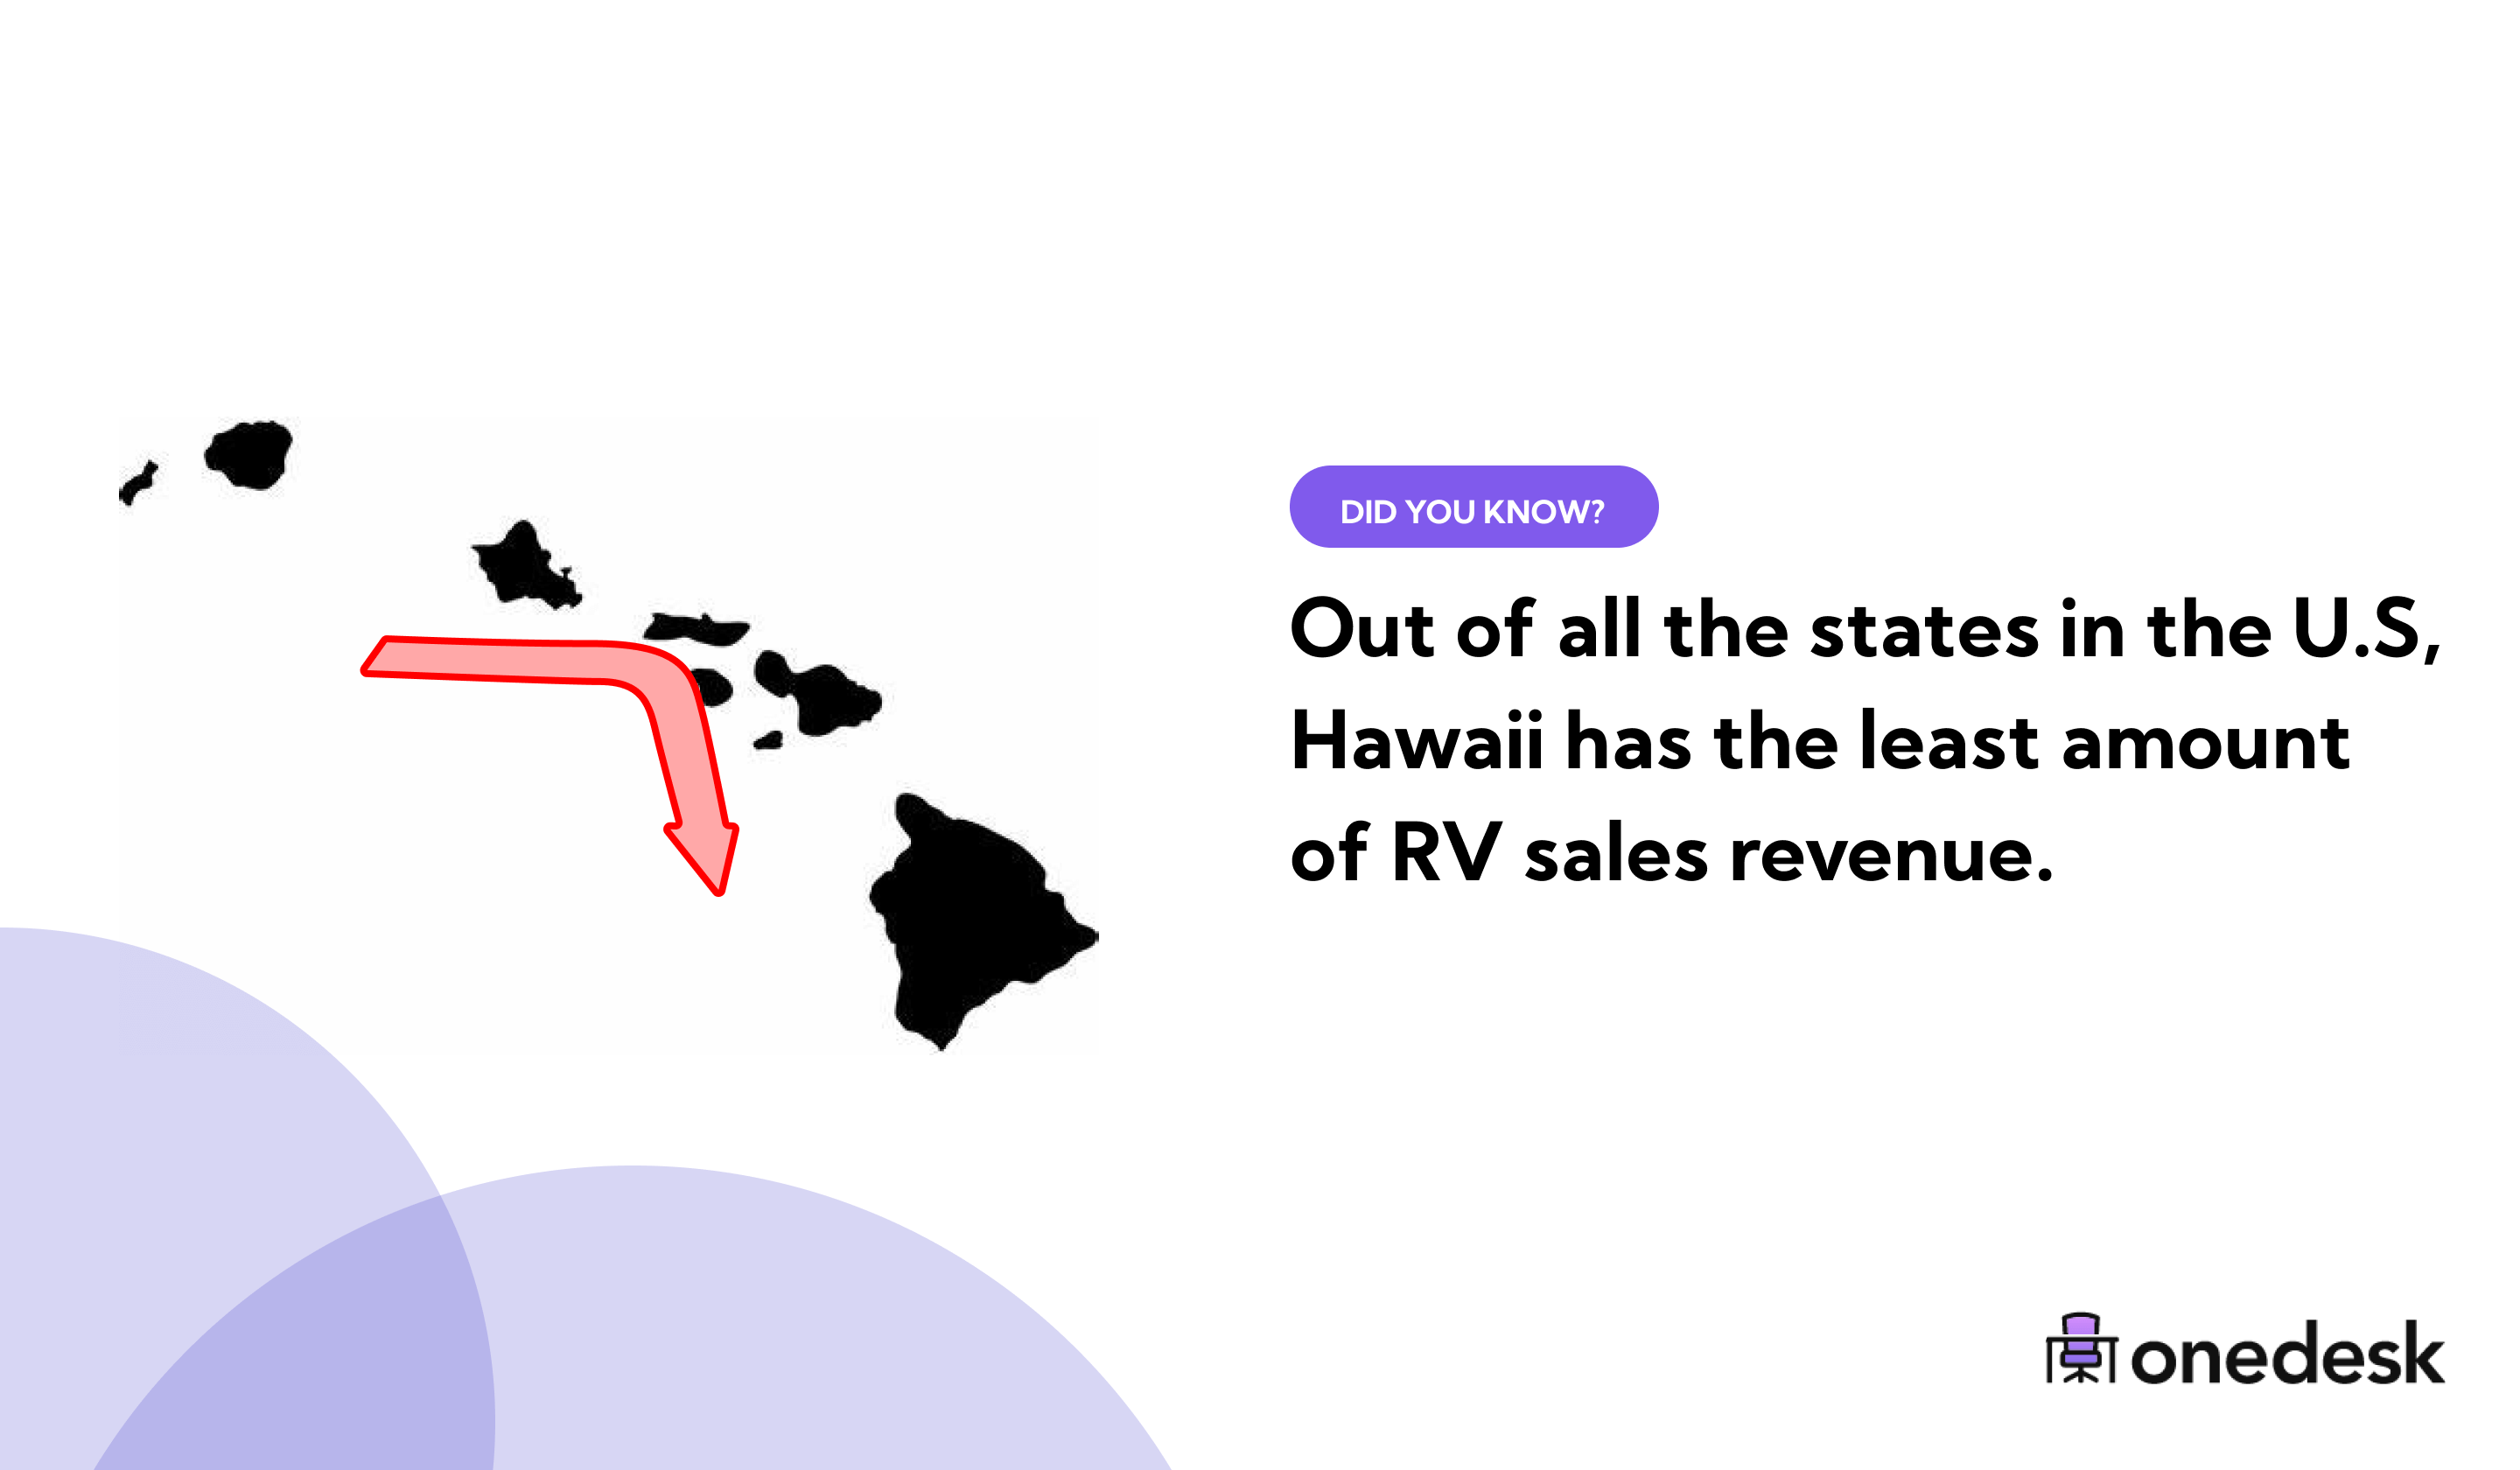 hawaii sells the least amount of RVs in the USA